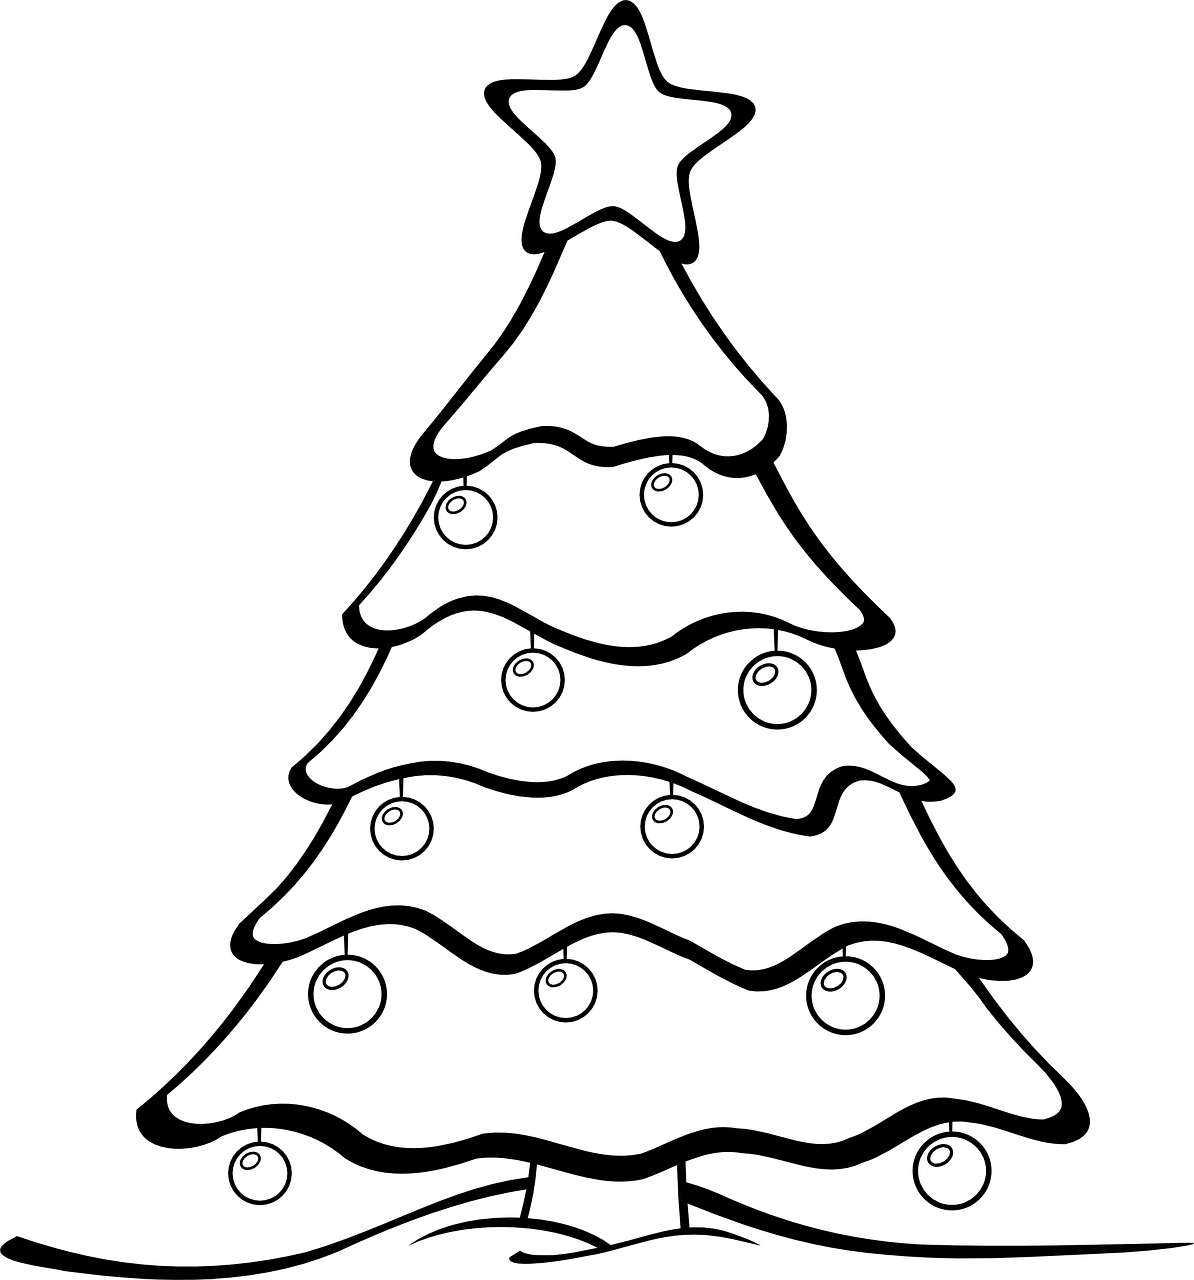 Colouring in xmas tree - Christmas Tree Colouring Page